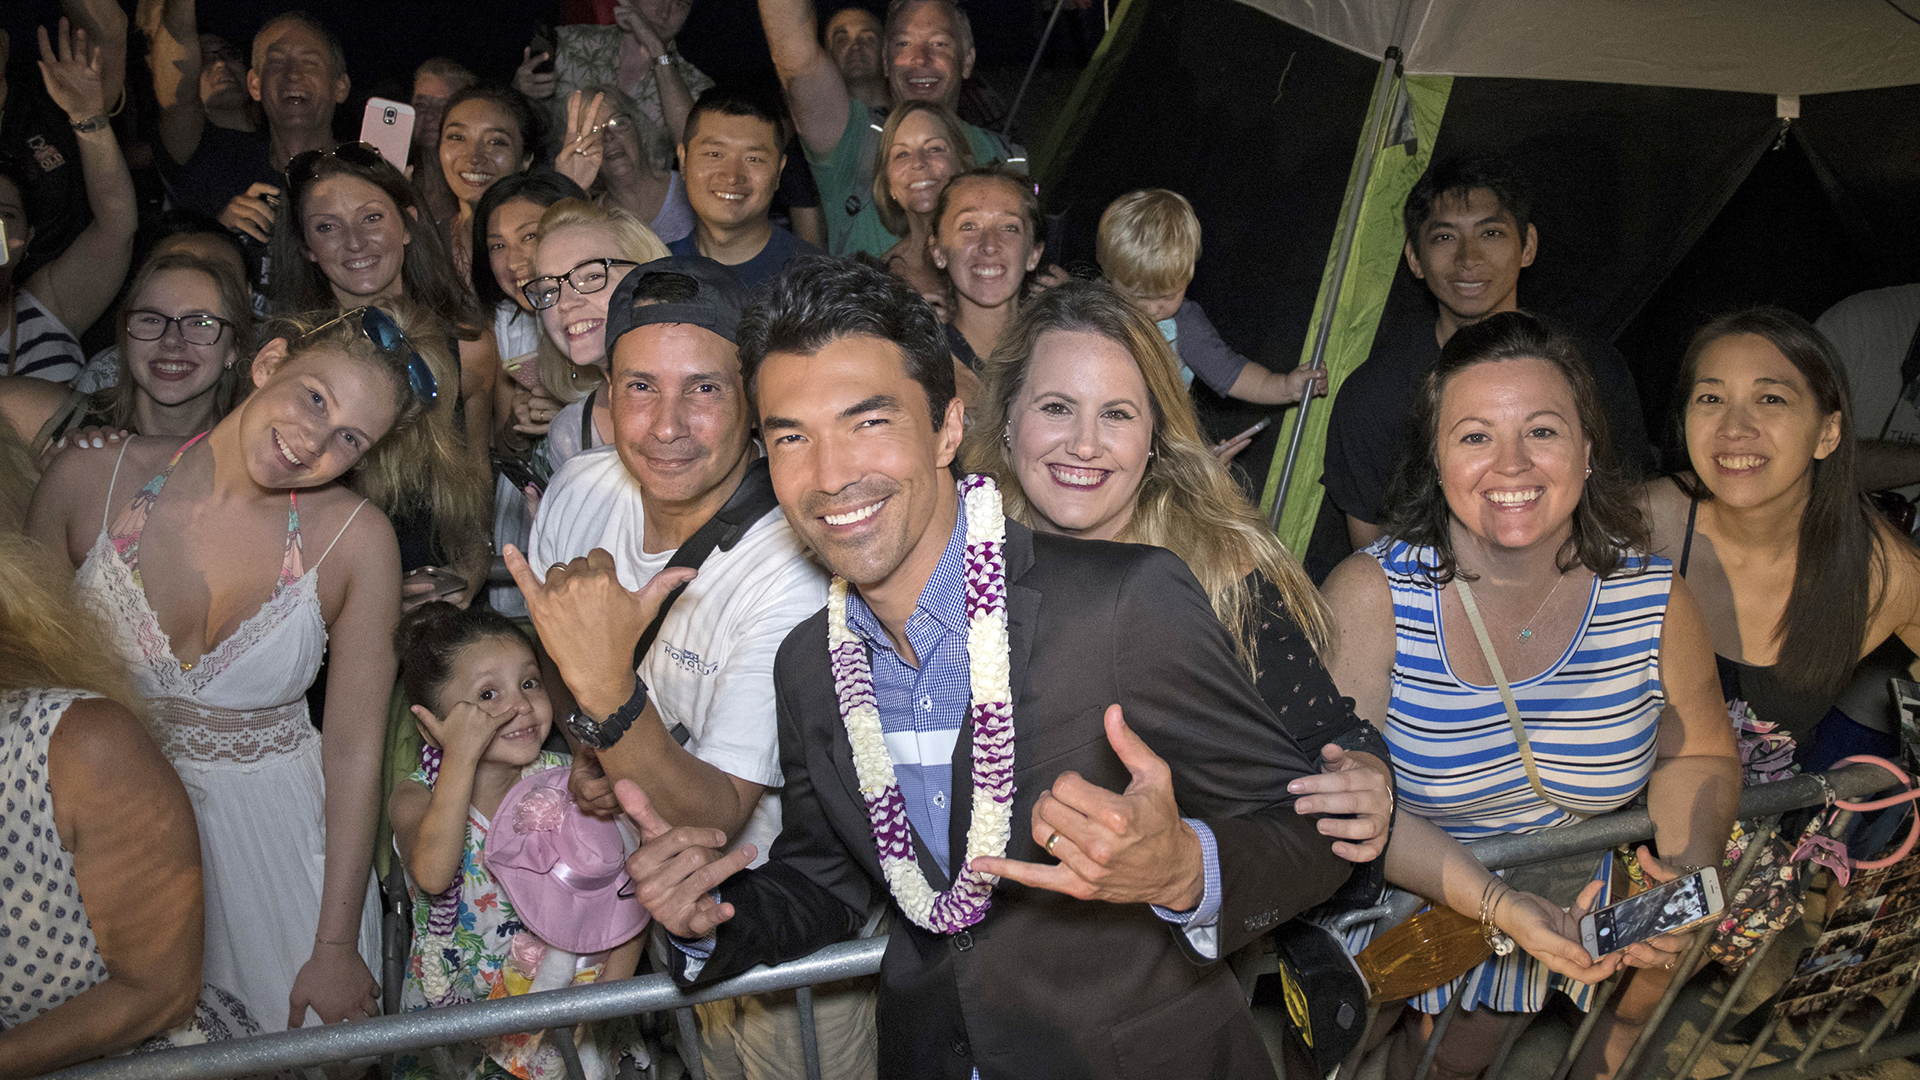 Ian Anthony Dale hangs ten with a bevy of fans.